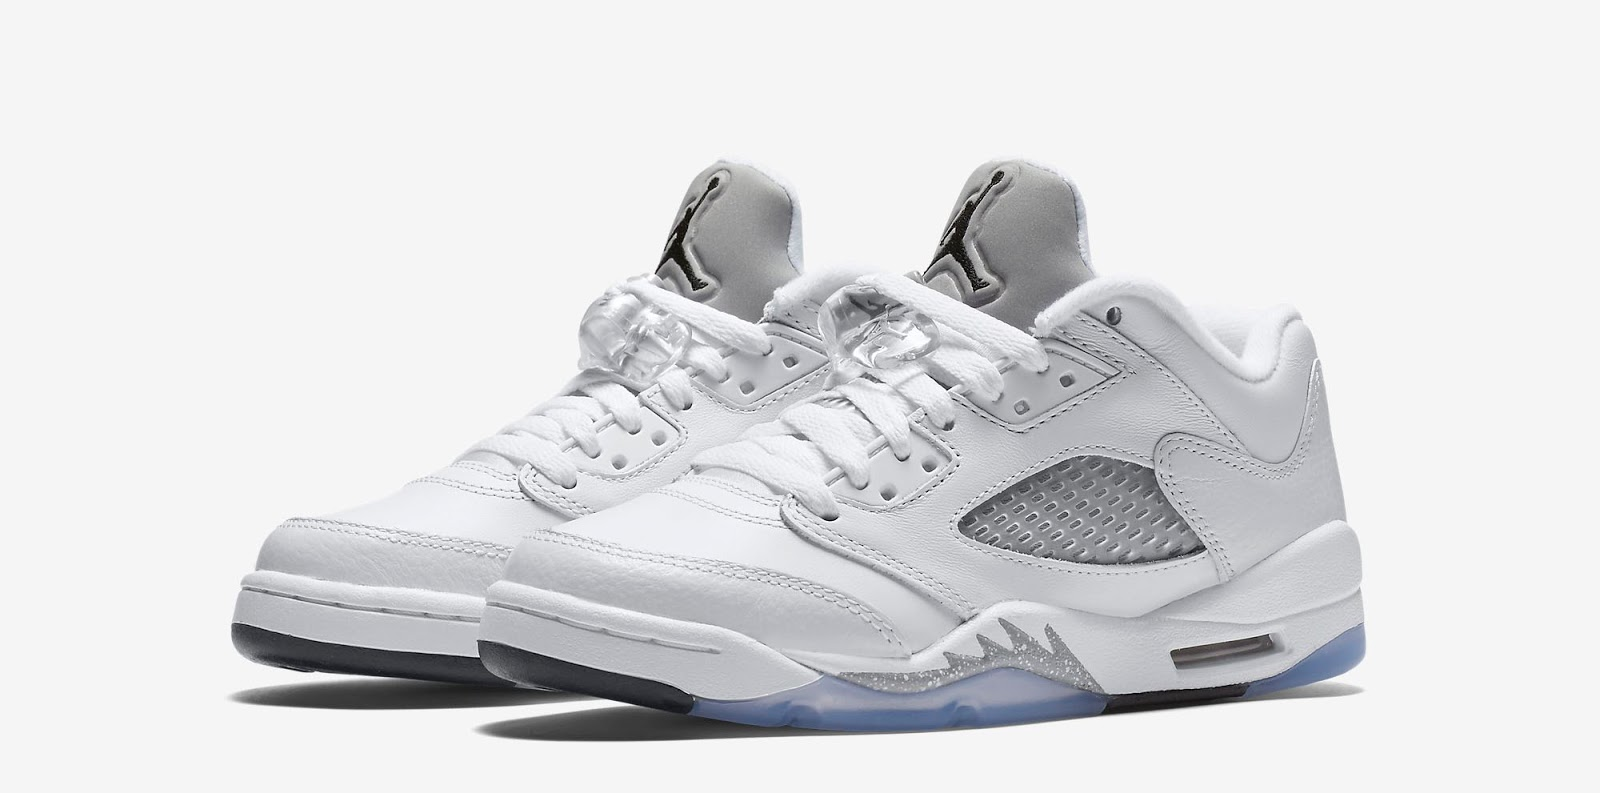 huge selection of bf4aa f933d Last seen in low-top form in 2006 when they released in women s sizes, this  Girls Air Jordan 5 Retro Low GG comes in a white, black and wolf grey  colorway.